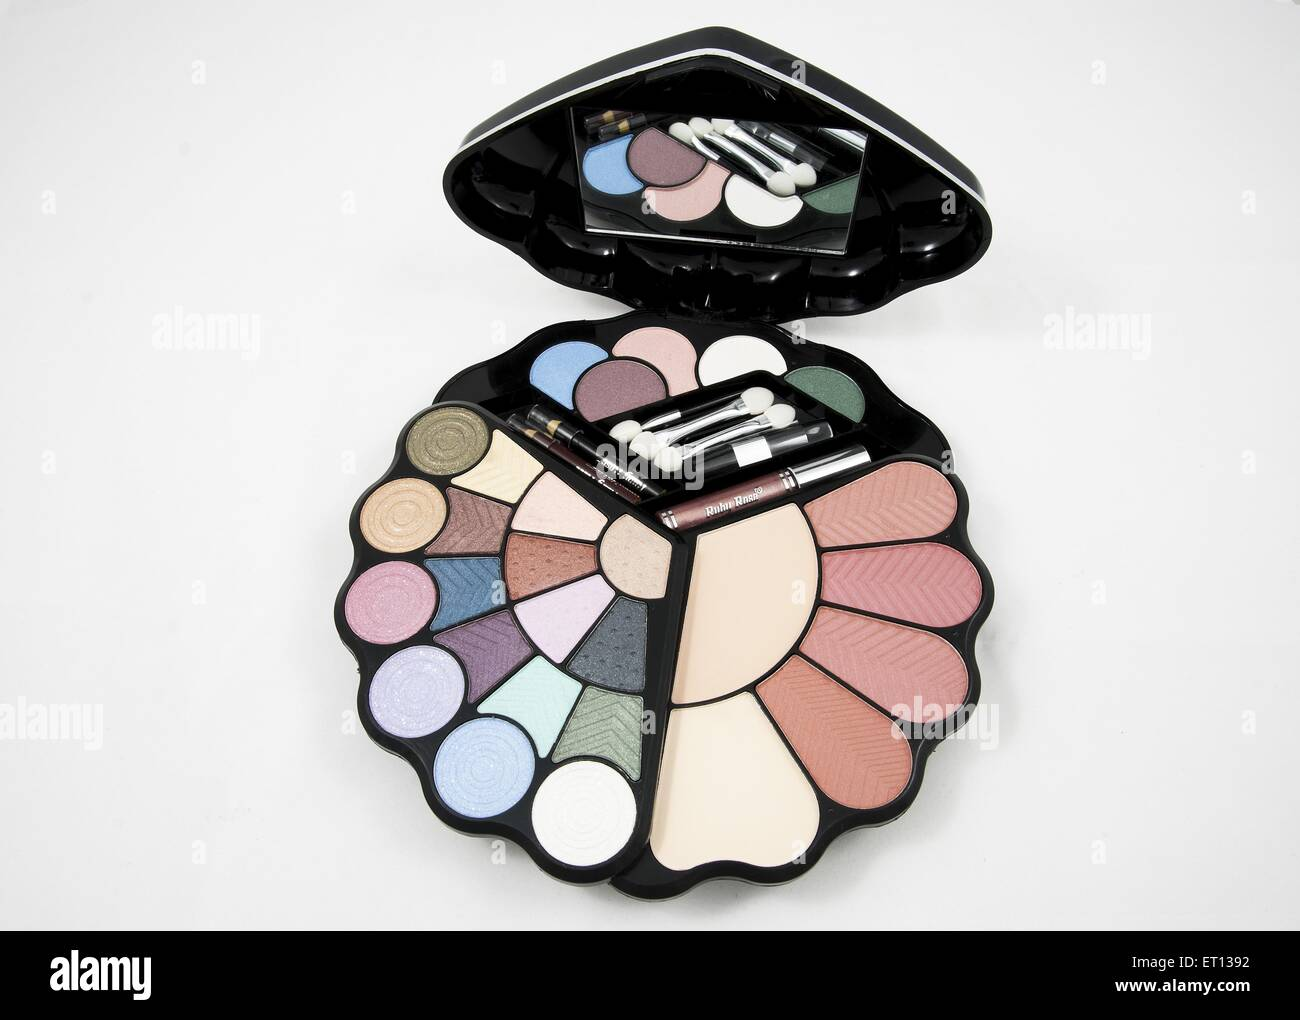 Eyeshadow palette with mirror on a white background - Stock Image